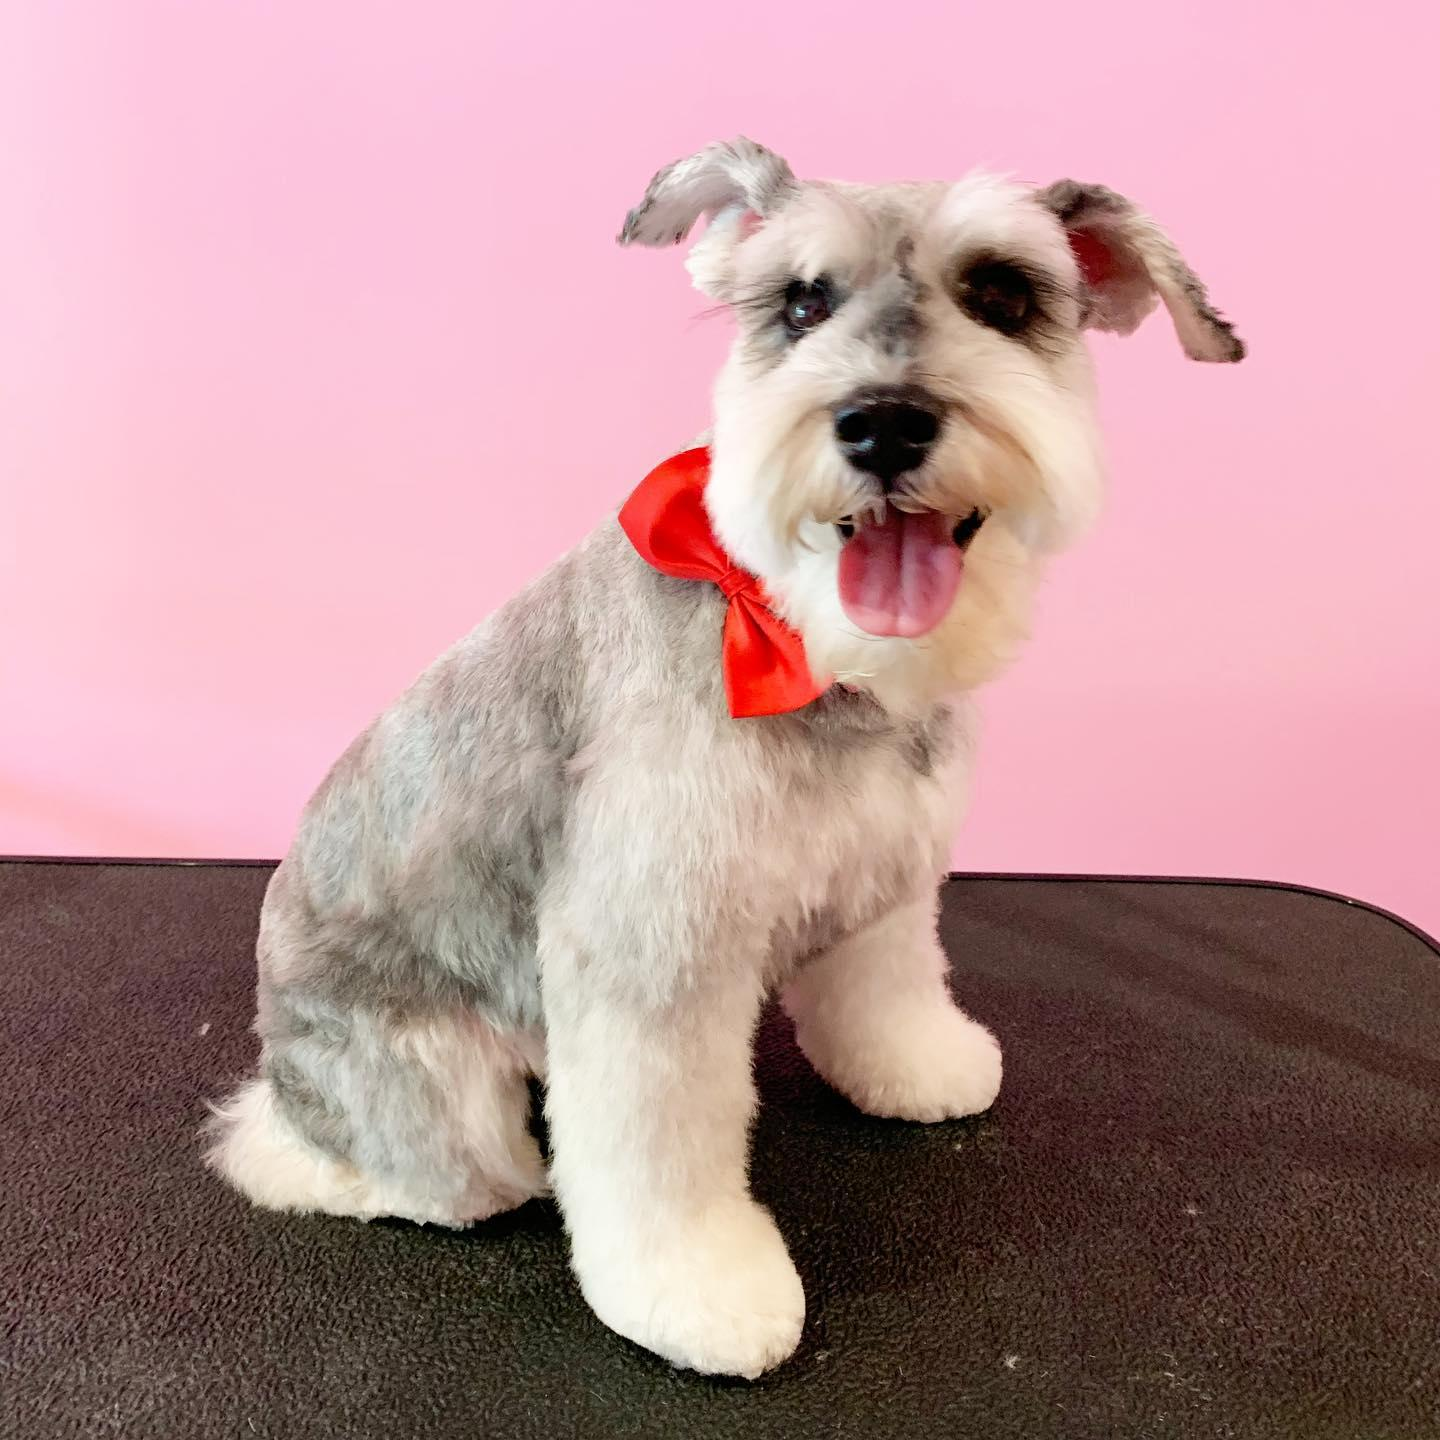 Do you need someone to deliver pet products at your doorsteps? Woof Gang Bakery & Grooming Aventura is a local store-to-door delivery service in Florida to fulfil all of your companion animal's needs.